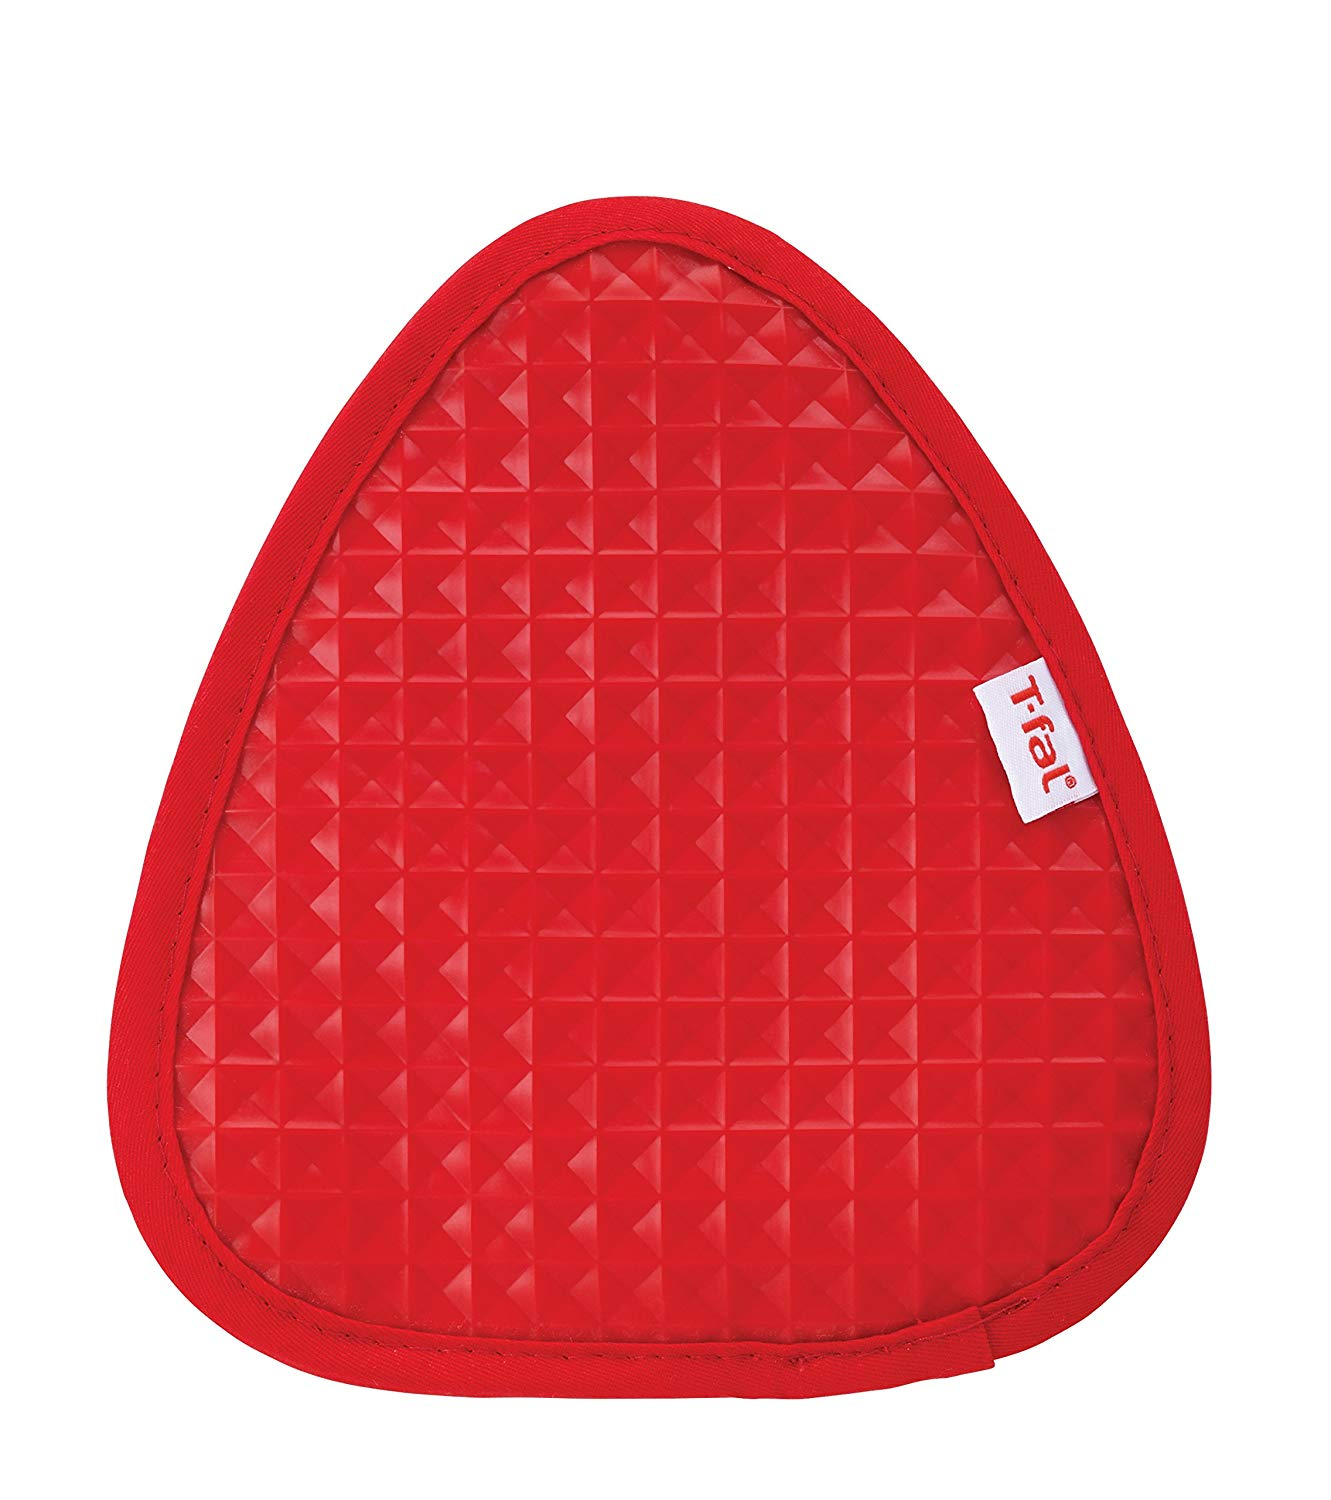 T-fal Textiles Silicone Waffle Softflex Non-Slip Grip 100% Cotton Twill Heat Resistant Pot Holder, 8.25-inches x 7.5-inches, Red